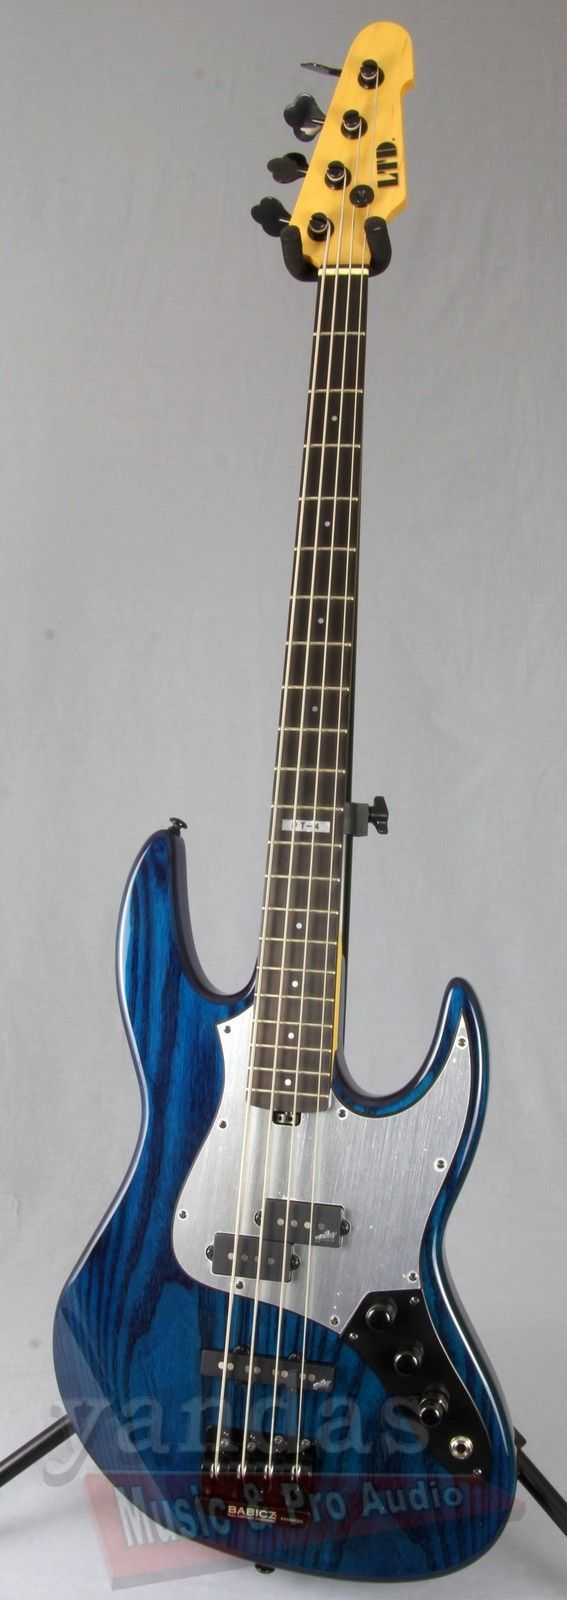 Signature Pancho Tomaselli Signature Bass Guitar From LTD Pancho Tomaselli is the master bassist of legendary funk pioneers War and multi-form power trio PHILM with veteran musicians Gerry Nestler and - more on www.guitaristica.org #bassguitar #guitars #guitaristica